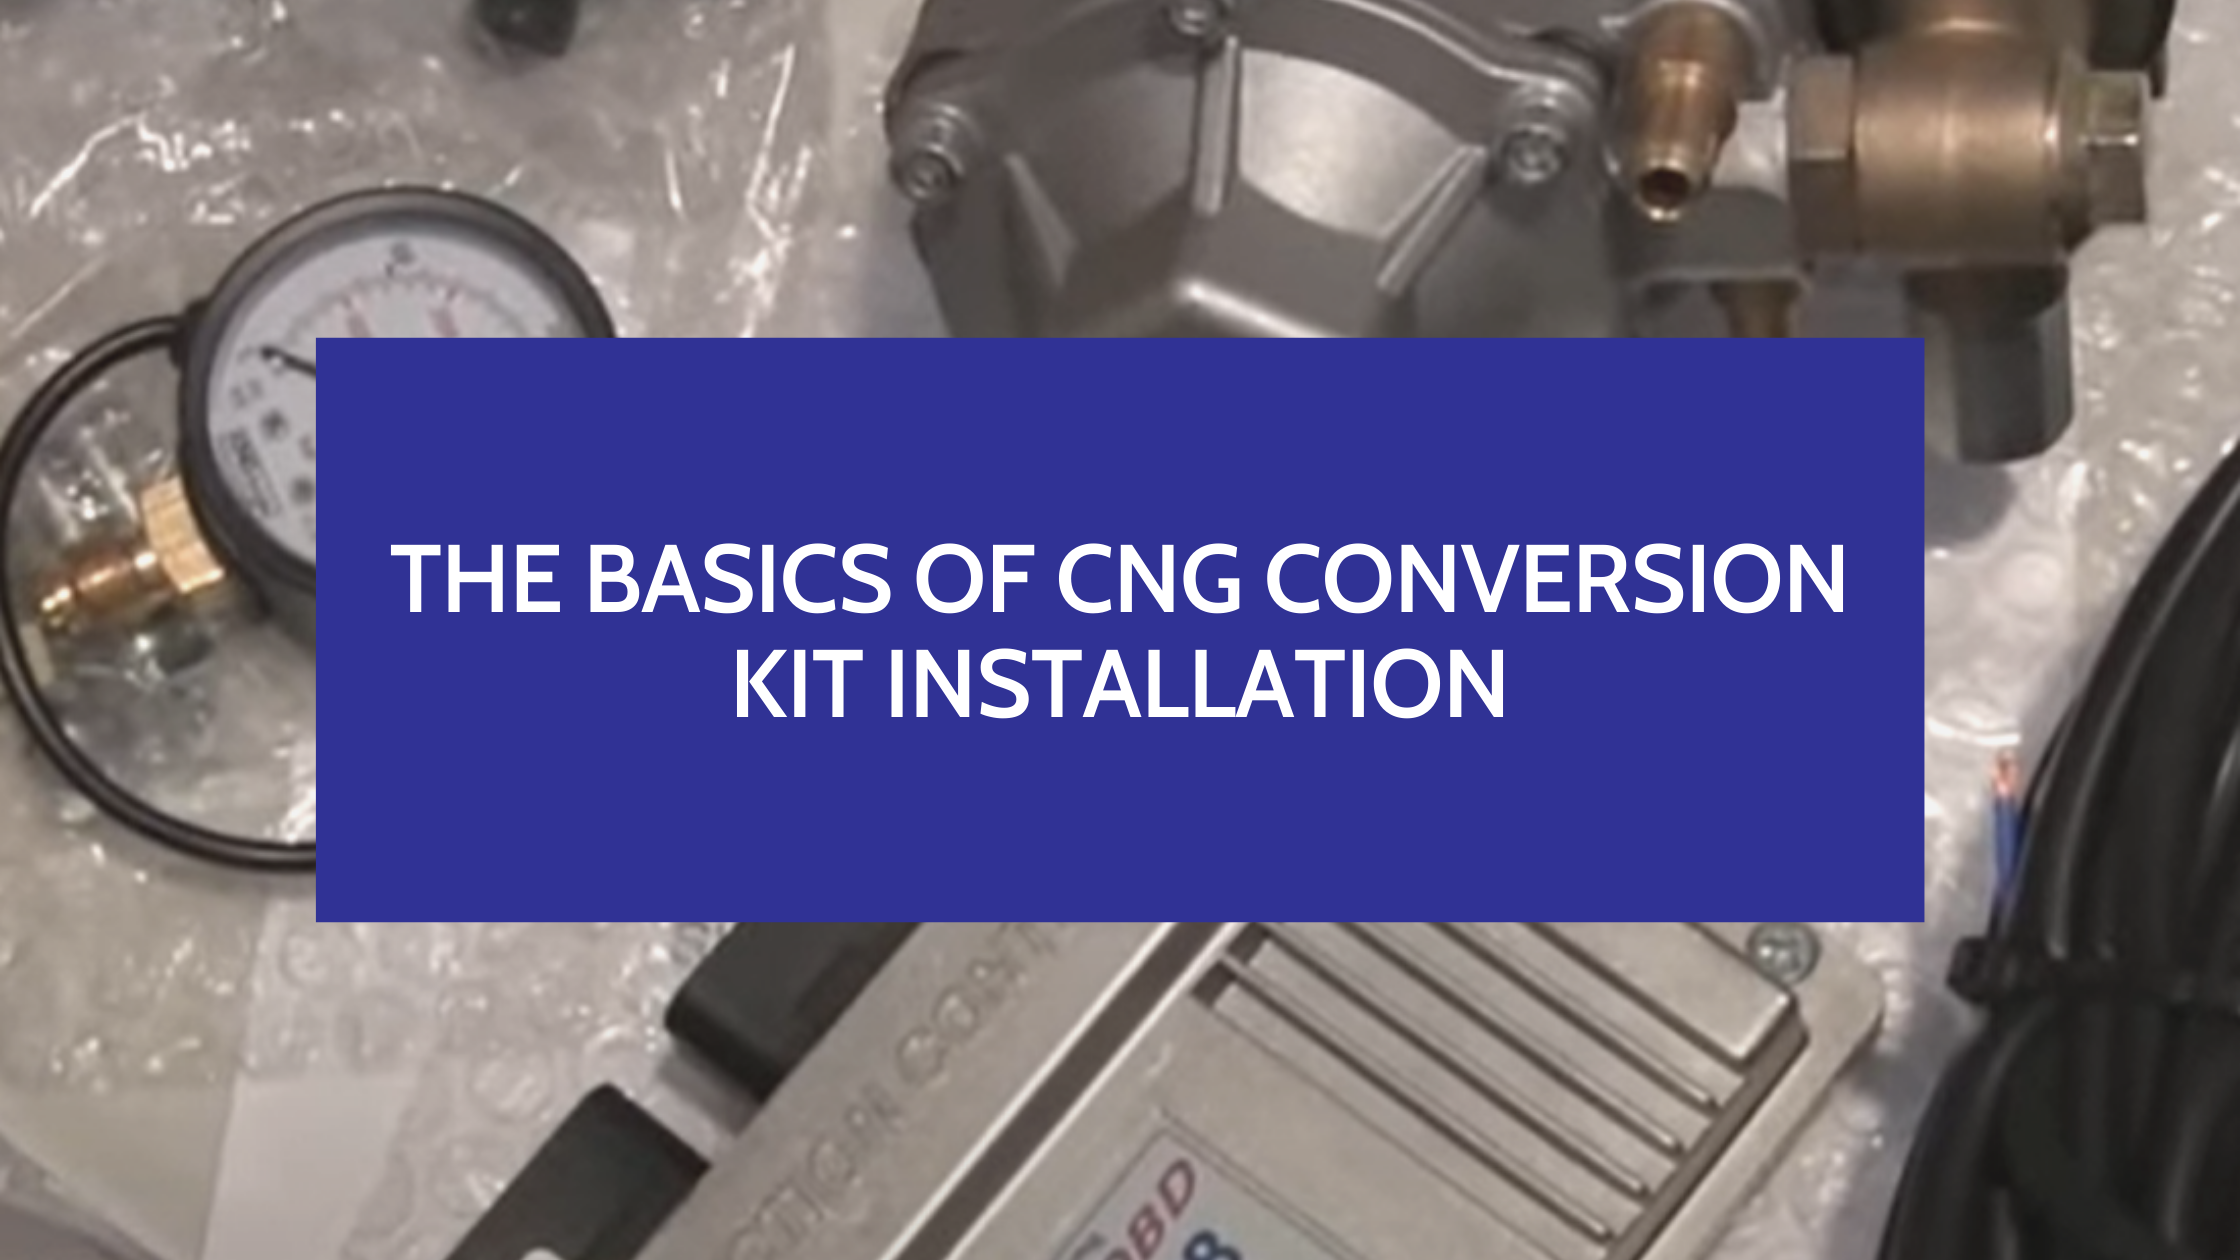 The Basics of CNG Conversion Kit Installation